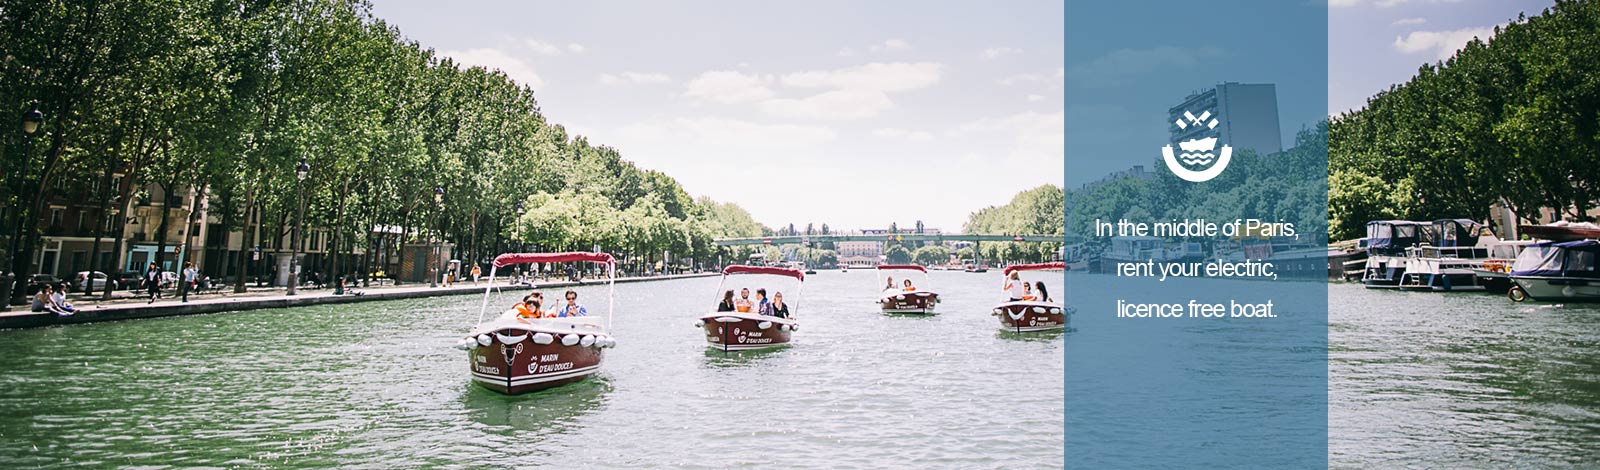 Rent an electric boat on the Canal de l'Ourcq